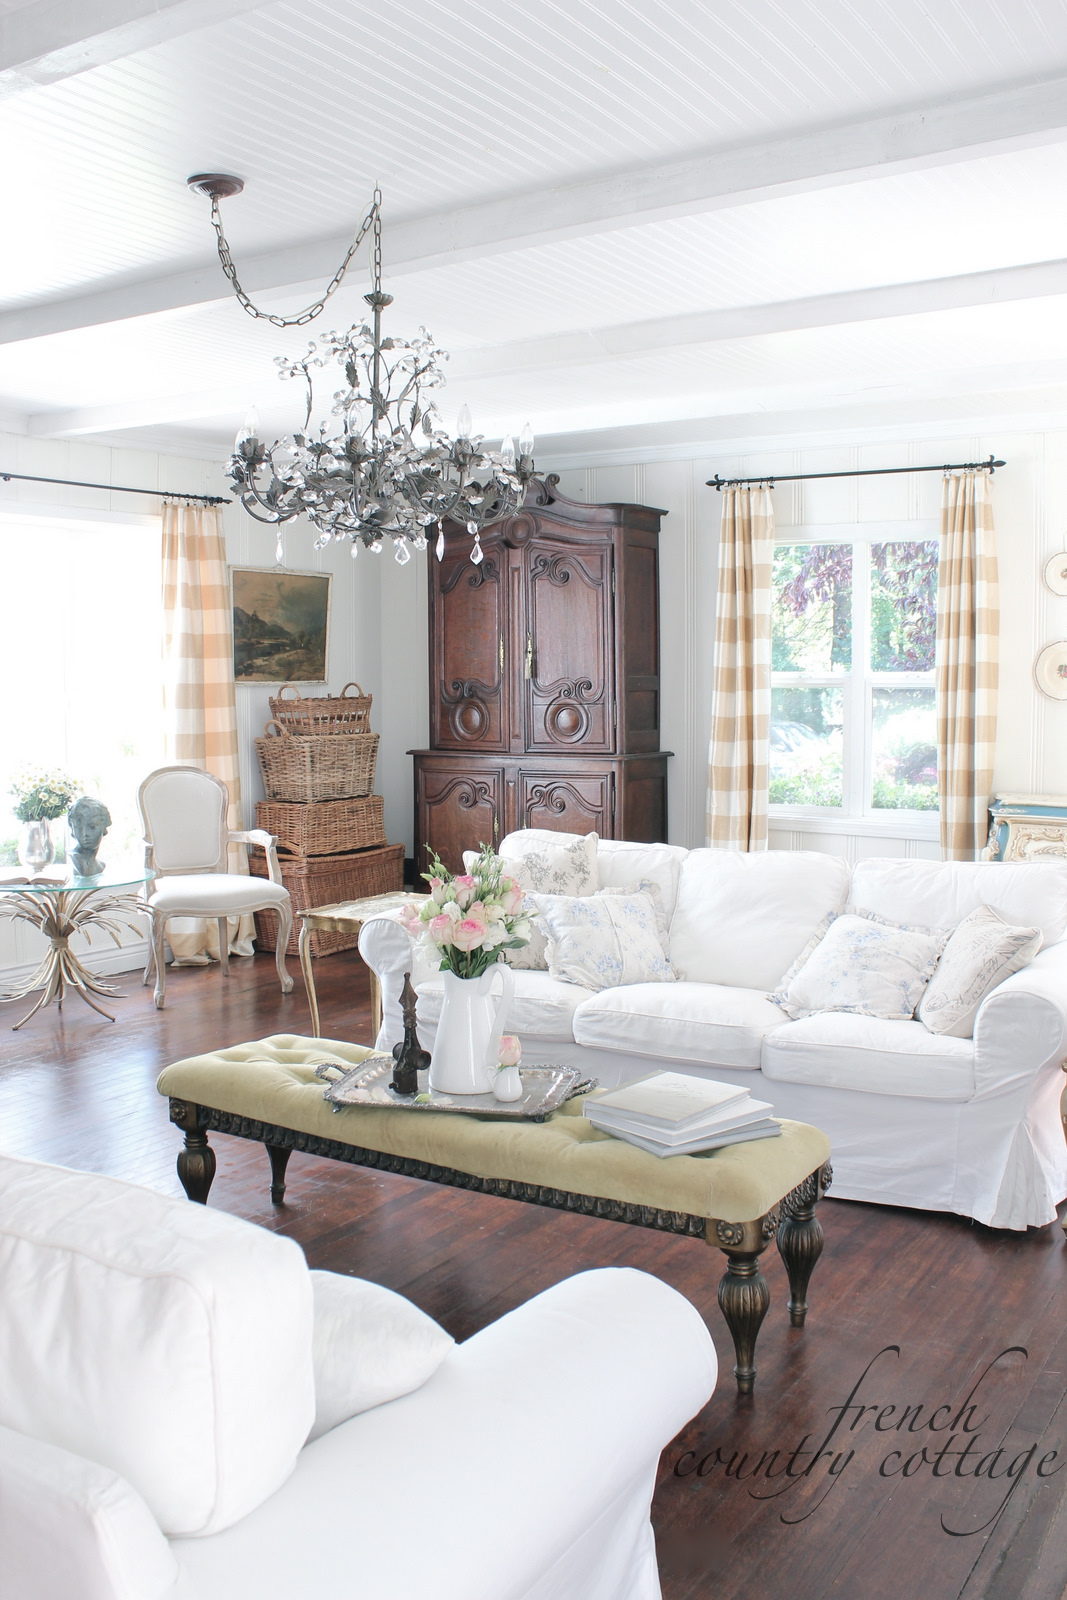 Ordinaire White Slipcovers